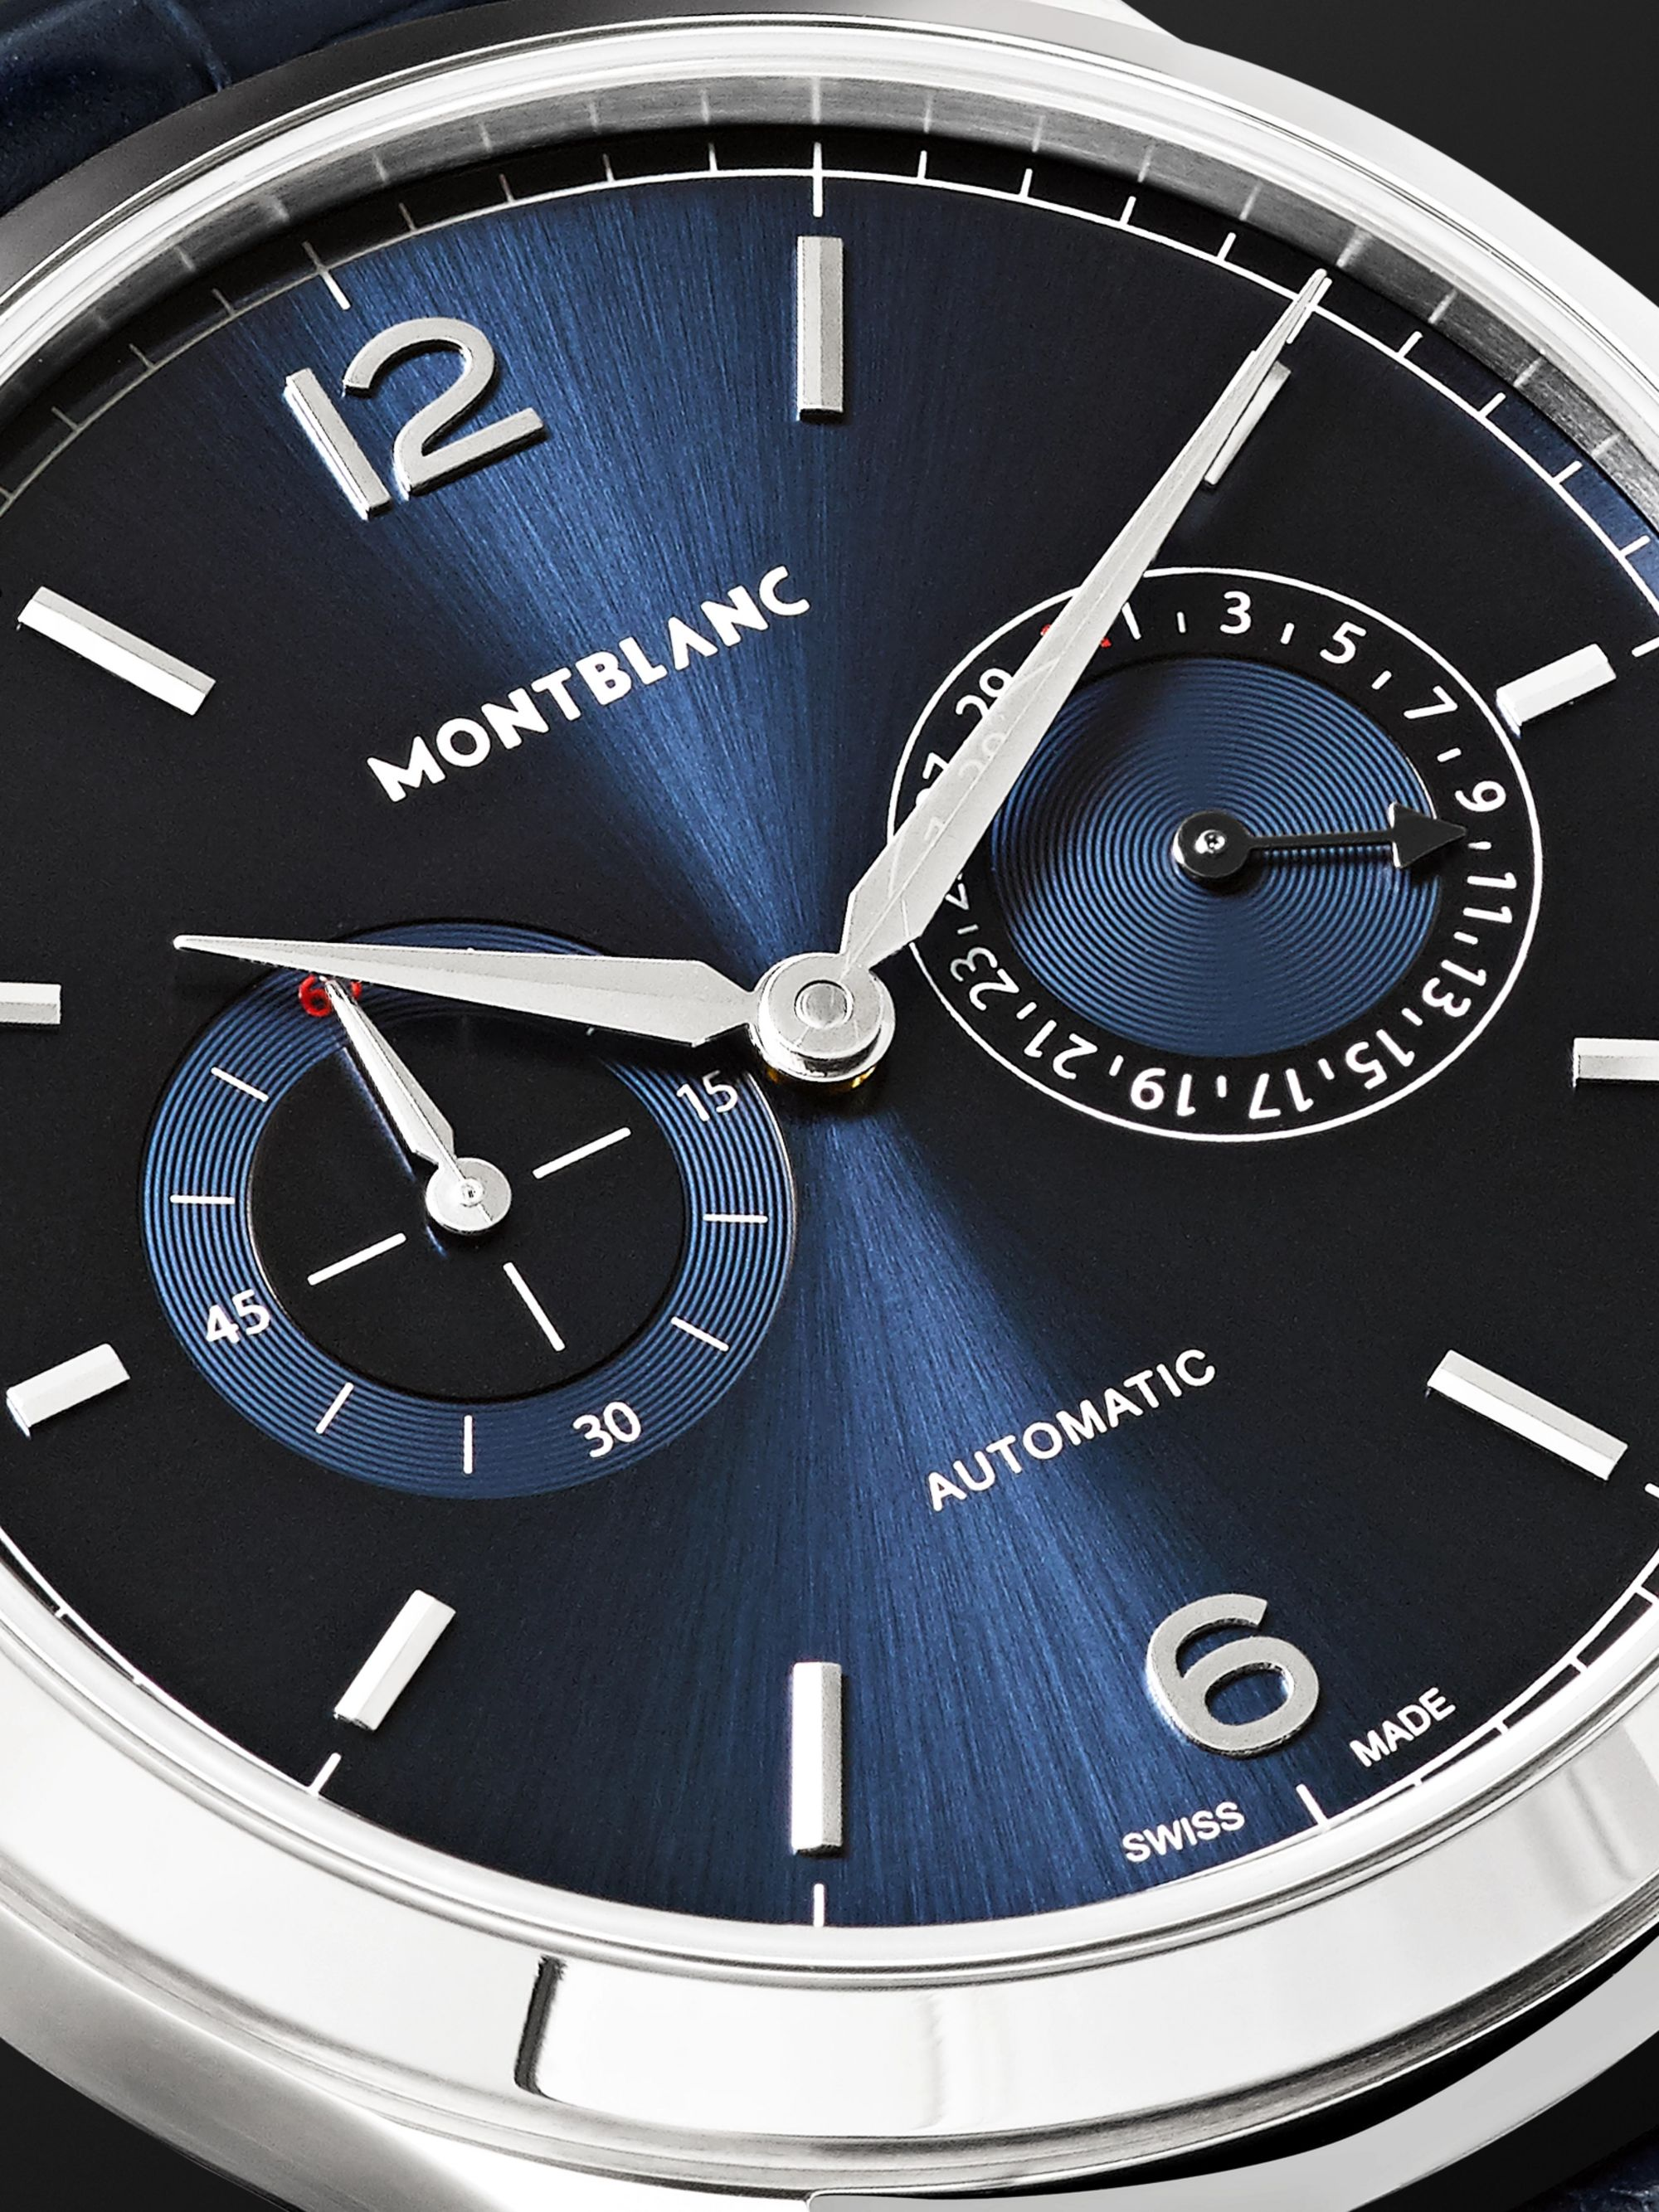 Montblanc Heritage Chronométrie Twincounter Date Automatic 40mm Stainless Steel and Alligator Watch, Ref. No. 116244